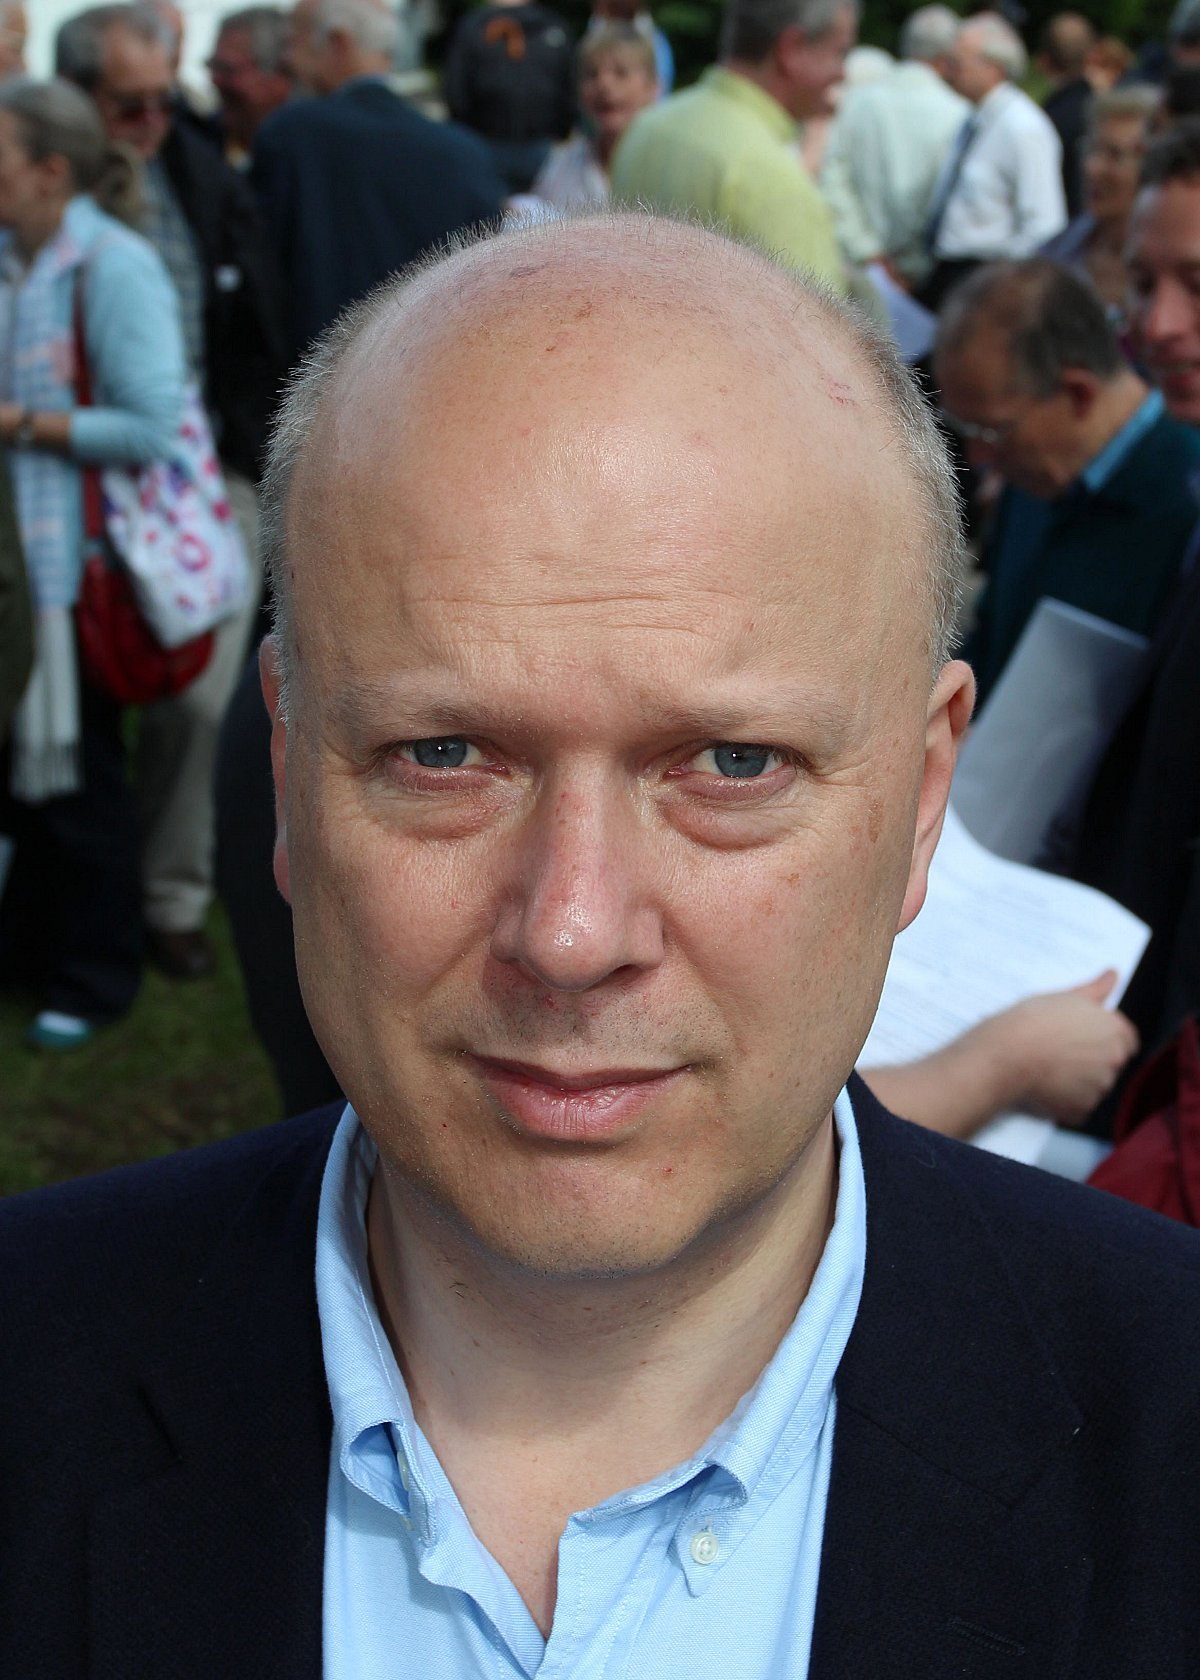 Chris Grayling, MP for Epsom, and Secretary of State for Justice